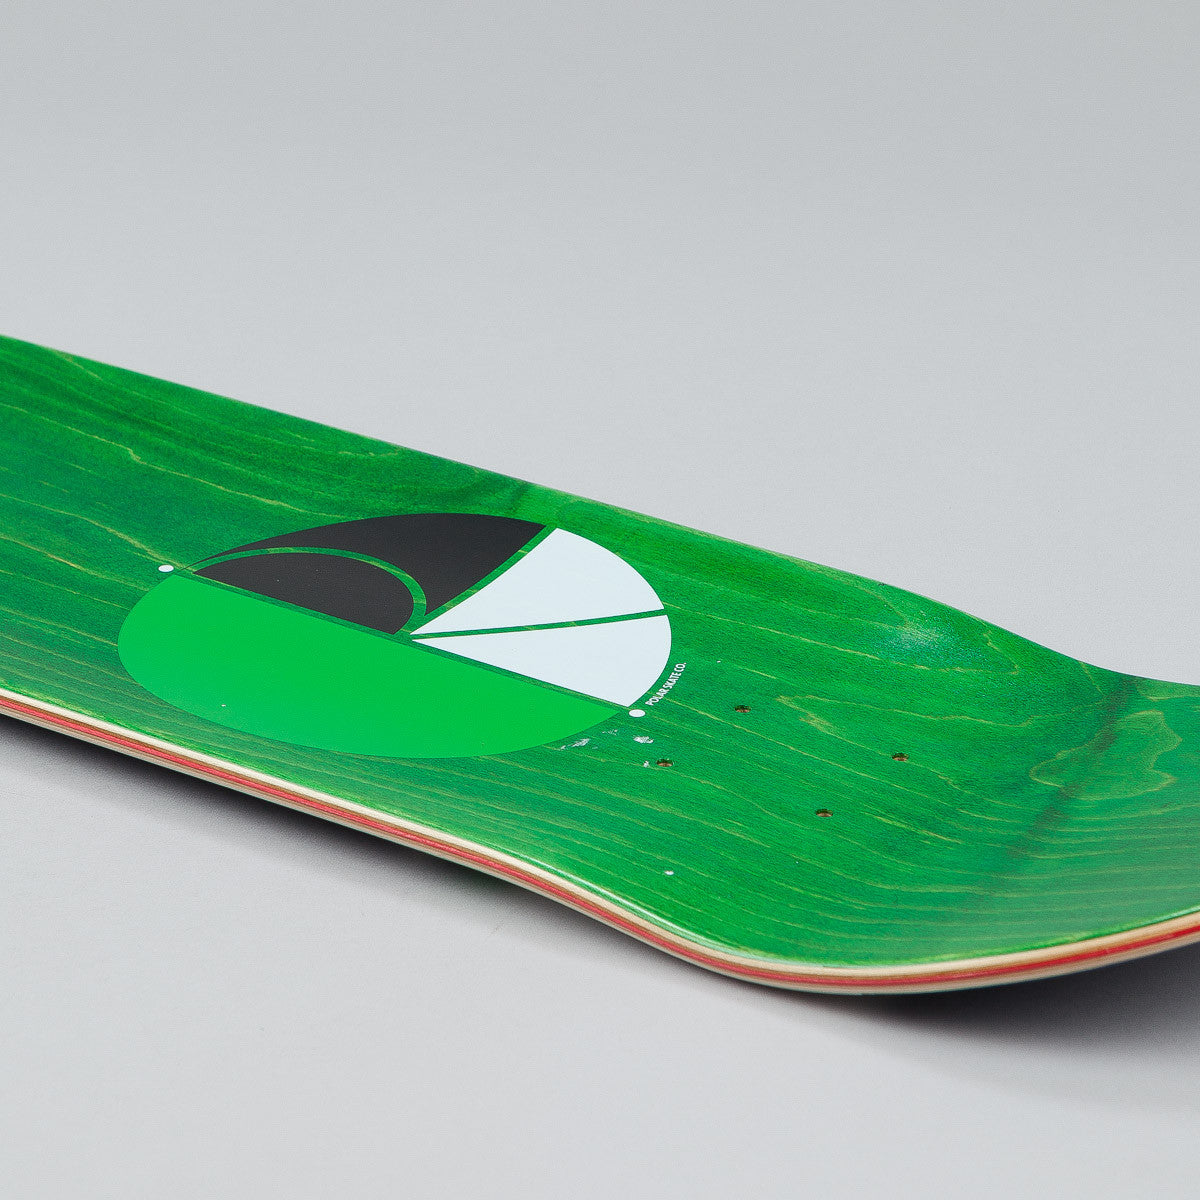 Polar JC BS Noseblunt Deck - Navy 8.125""